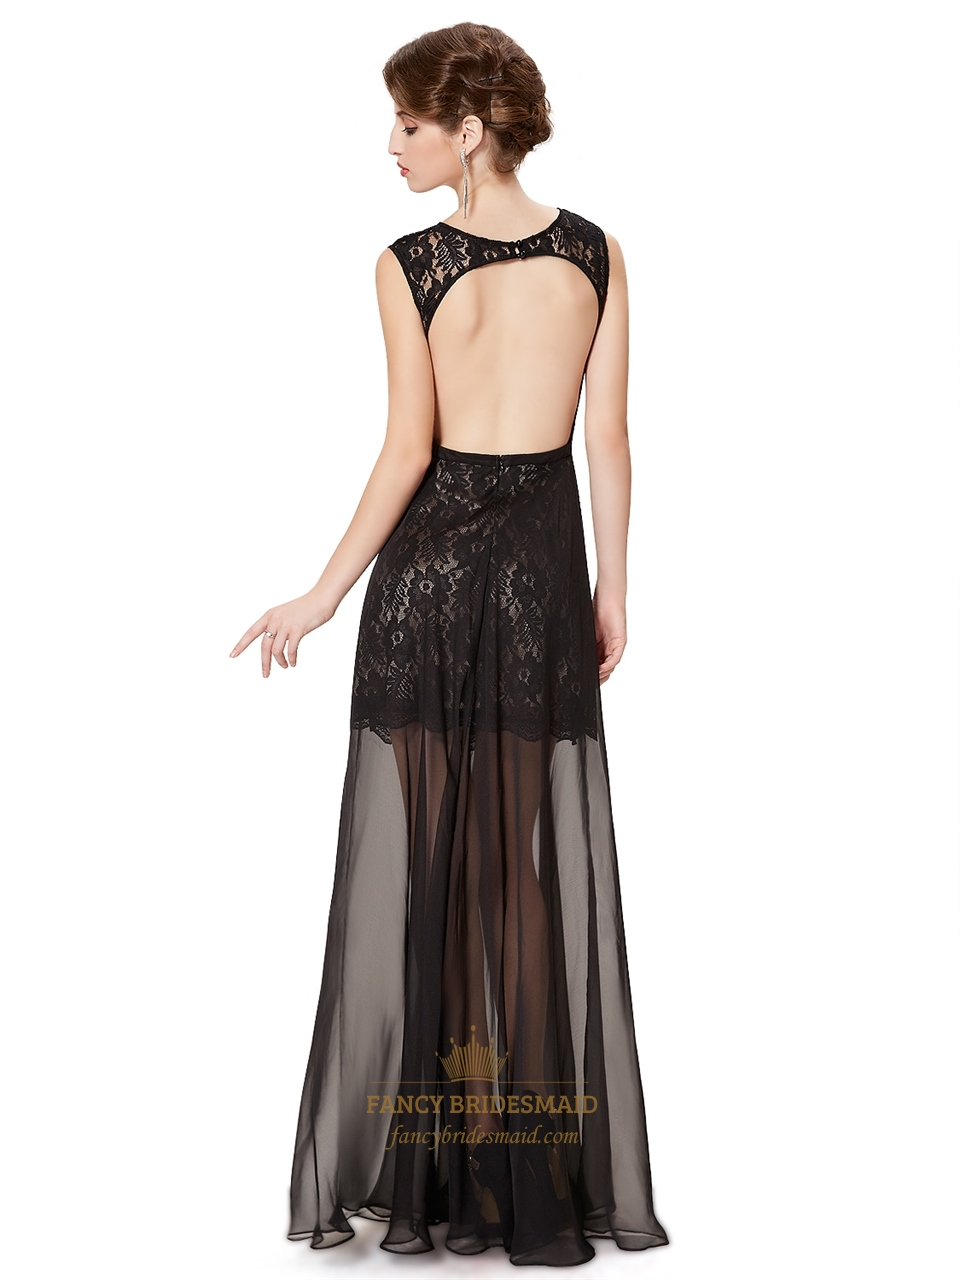 Black Lace Sleeveless Open Back Prom Dress With Sheer